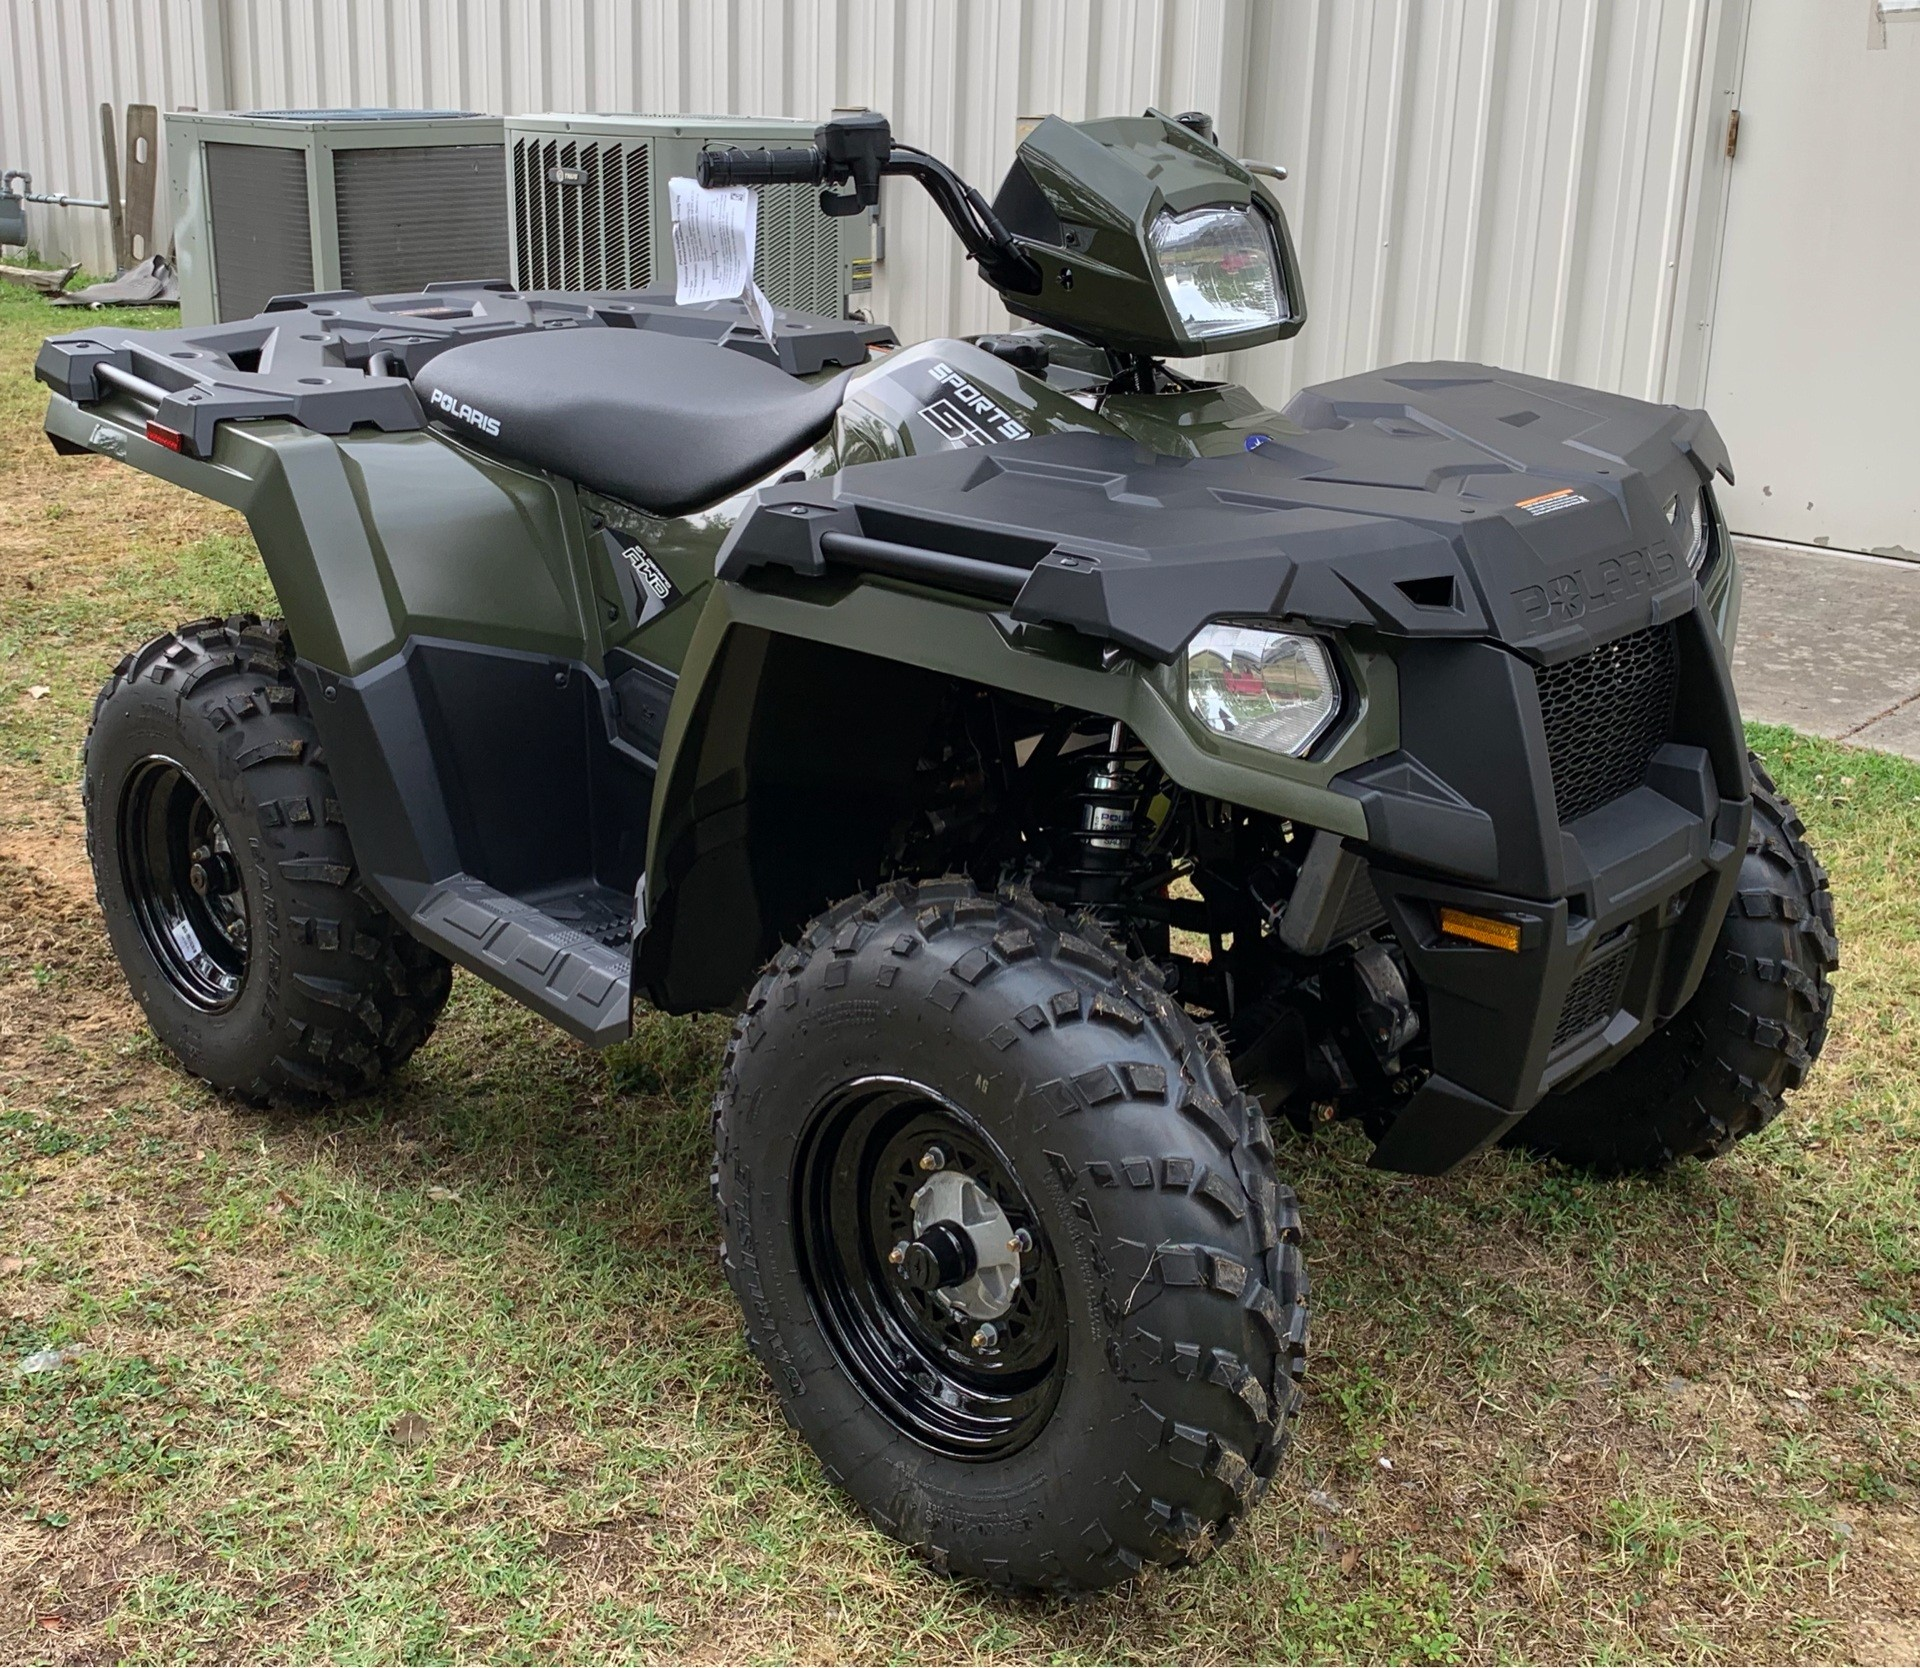 2019 Polaris Sportsman 570 in High Point, North Carolina - Photo 2